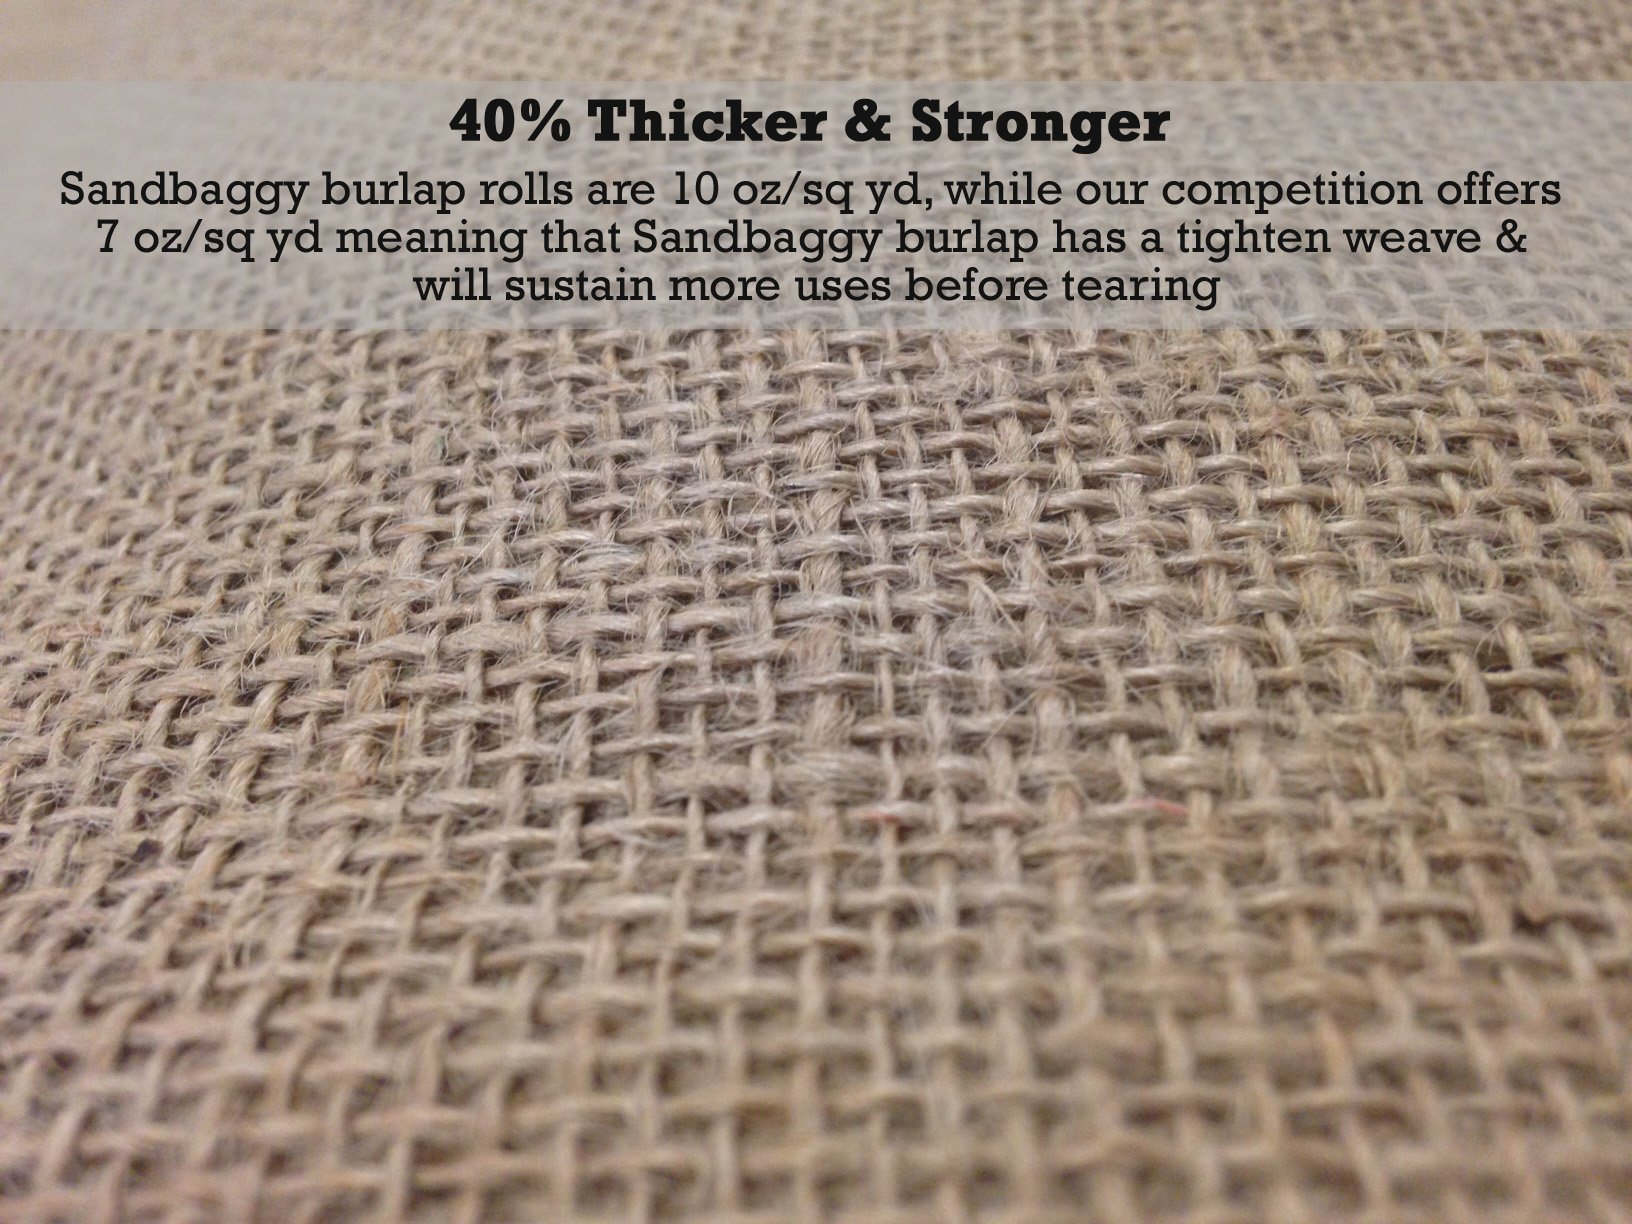 Sandbaggy Burlap Fabric Roll- for Garden, Yard, Wedding, Craft, Decorating Tables - 40 inch x 300 ft (1) by Sandbaggy (Image #4)